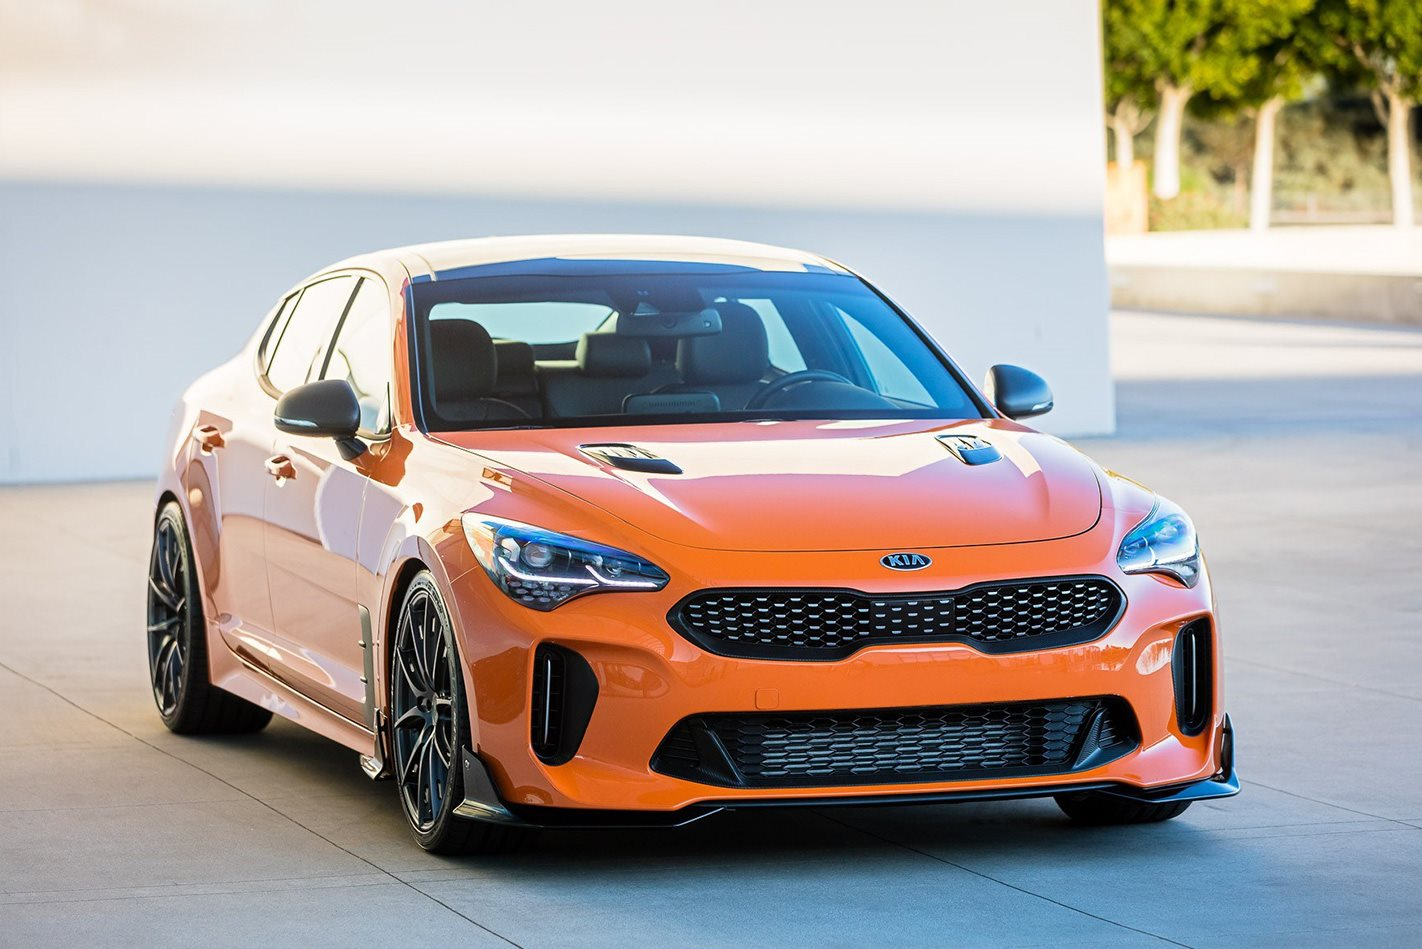 SEMA 2017: Kia Stinger aftermarket special editions revealed